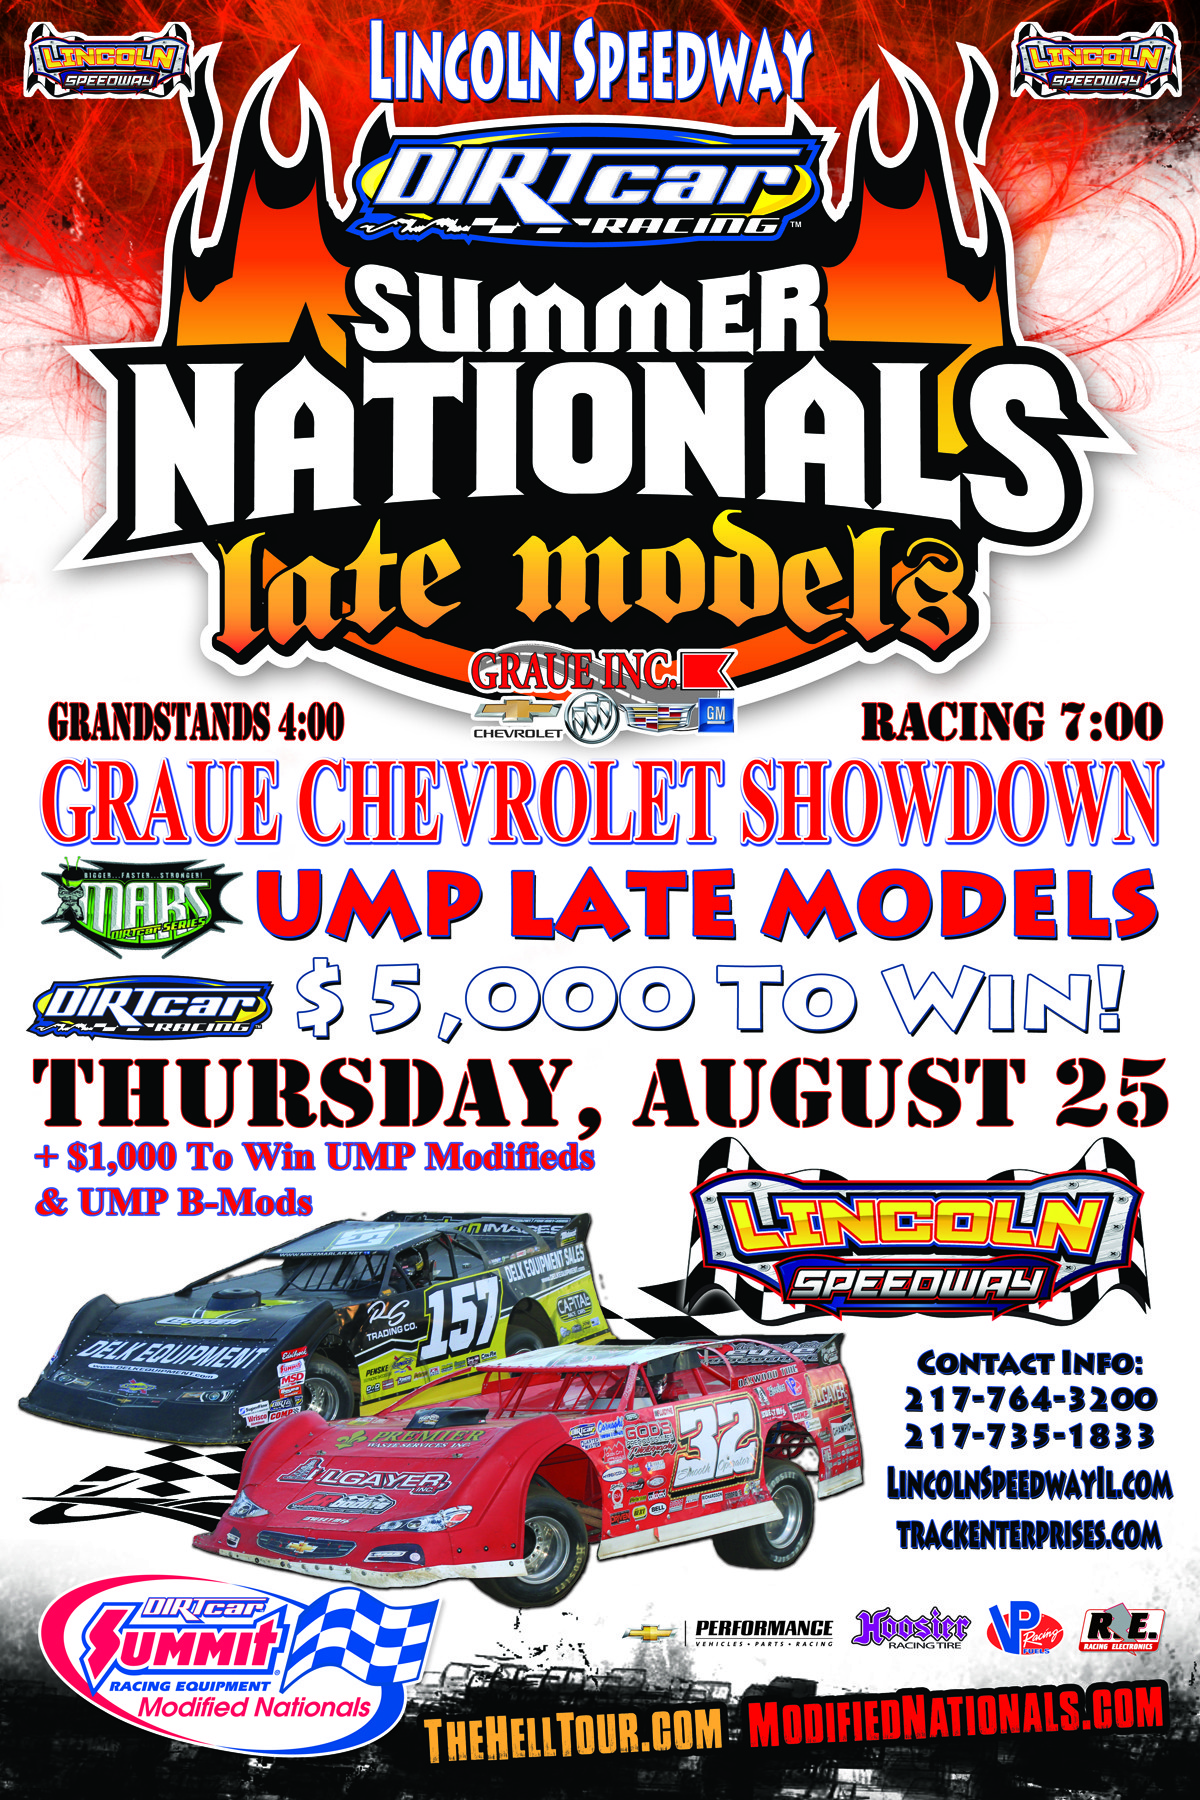 Graue Chevrolet Showdown August 25 Lincoln Speedway